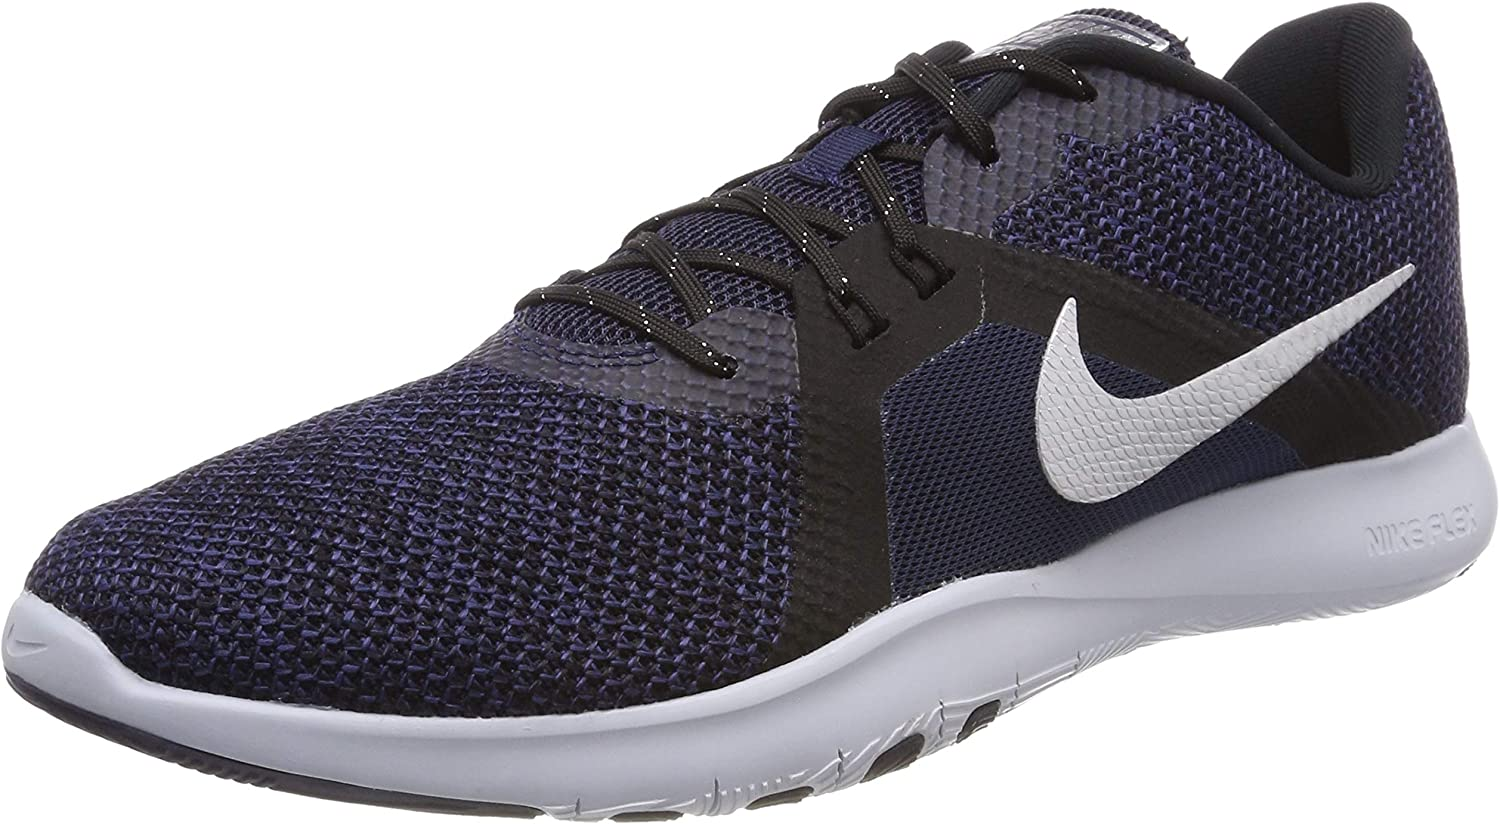 Nike Women's Flex 2021 model Trainer 8 Training Cross Shoes PRM Outlet ☆ Free Shipping